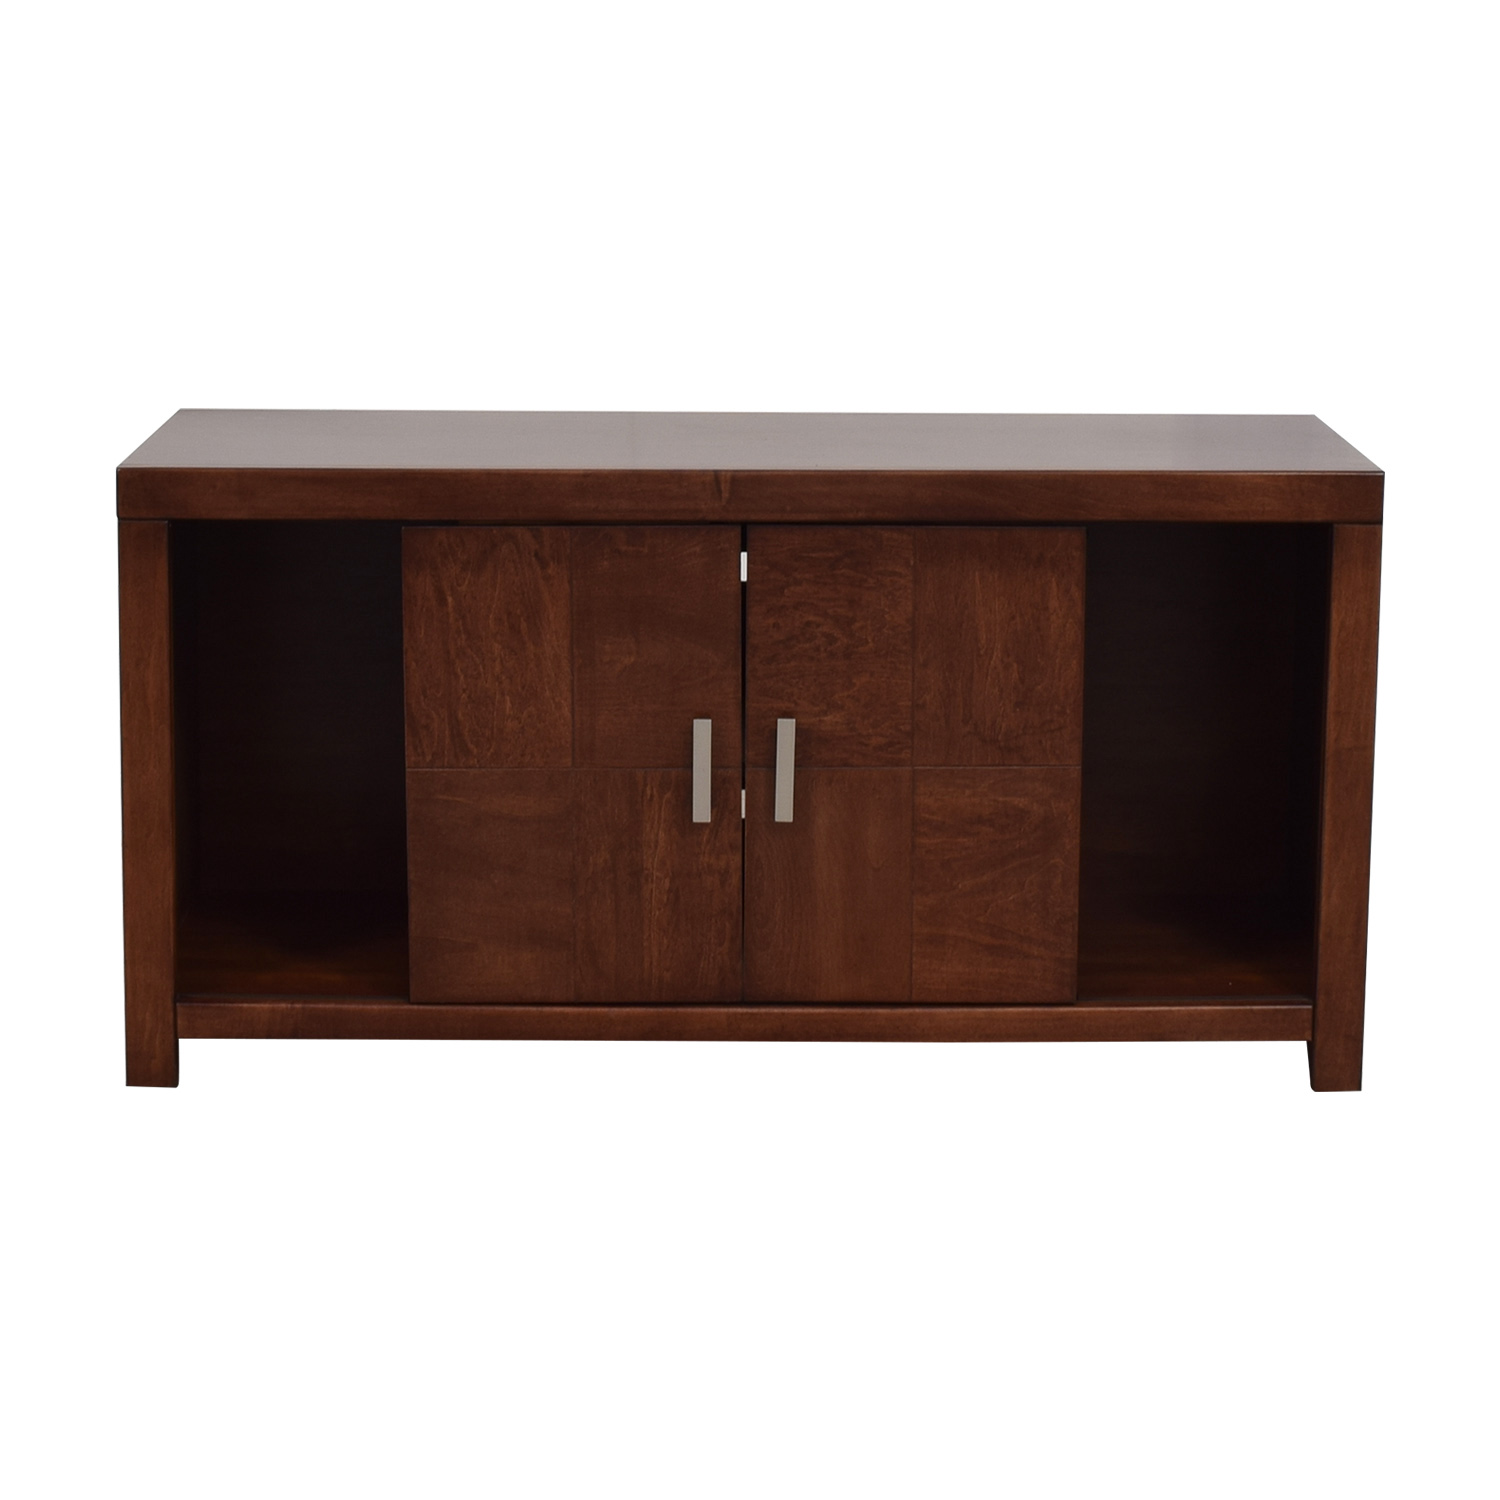 shop Raymour & Flanigan Cinnamon Maple Media Console Raymour & Flanigan Storage